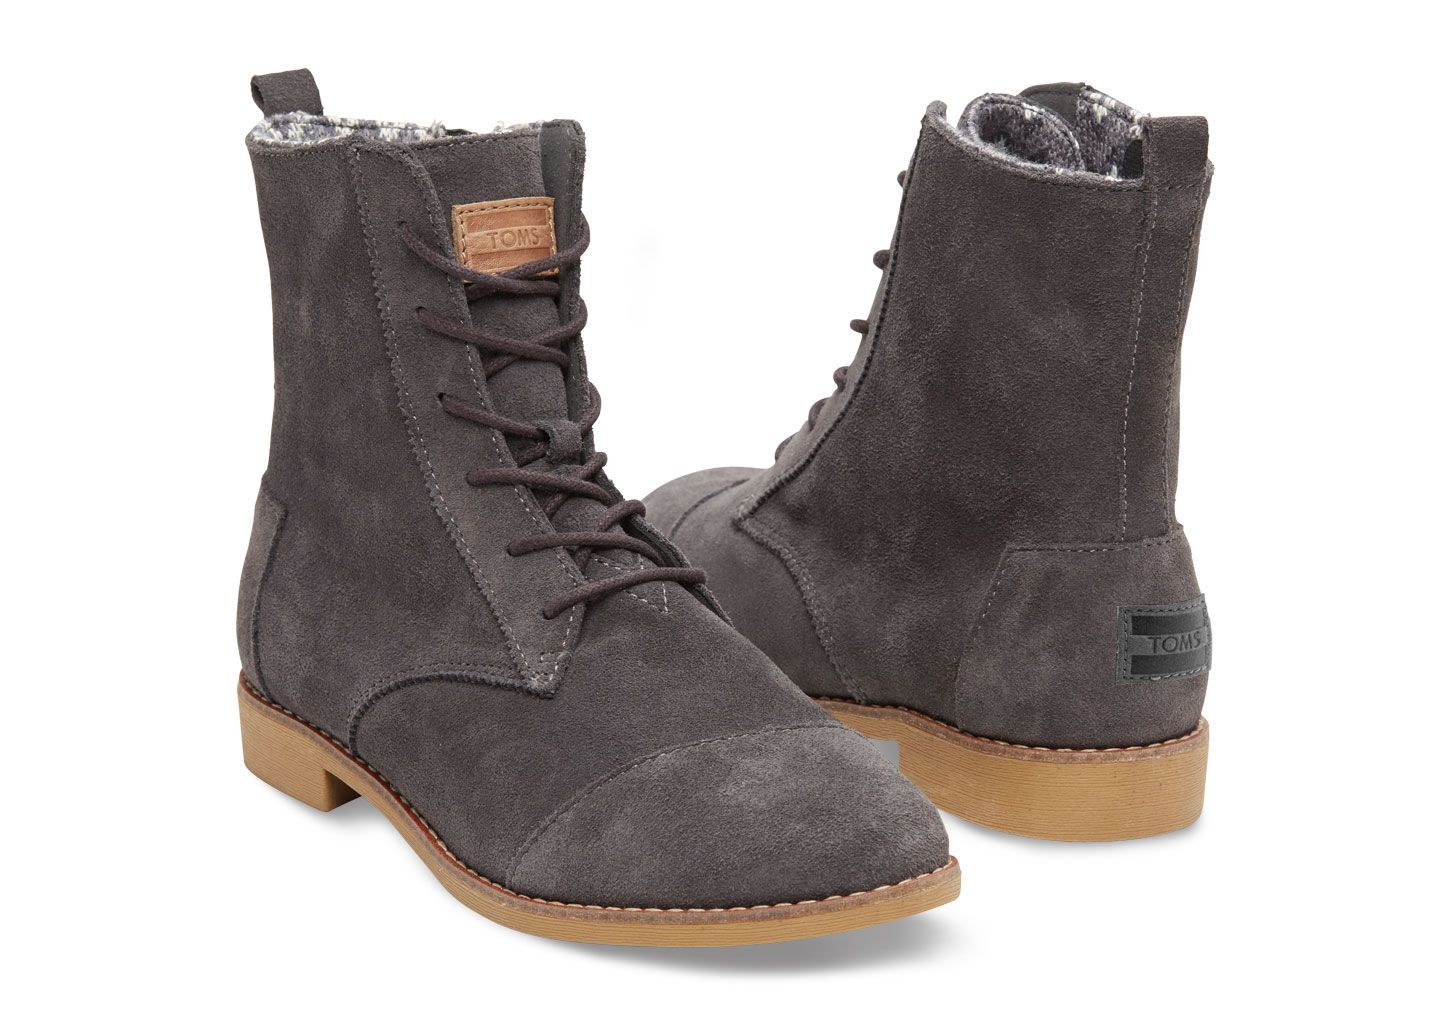 e310b7a31b0 DARK GREY SUEDE WOMEN S ALPA BOOTS from TOMS awesome